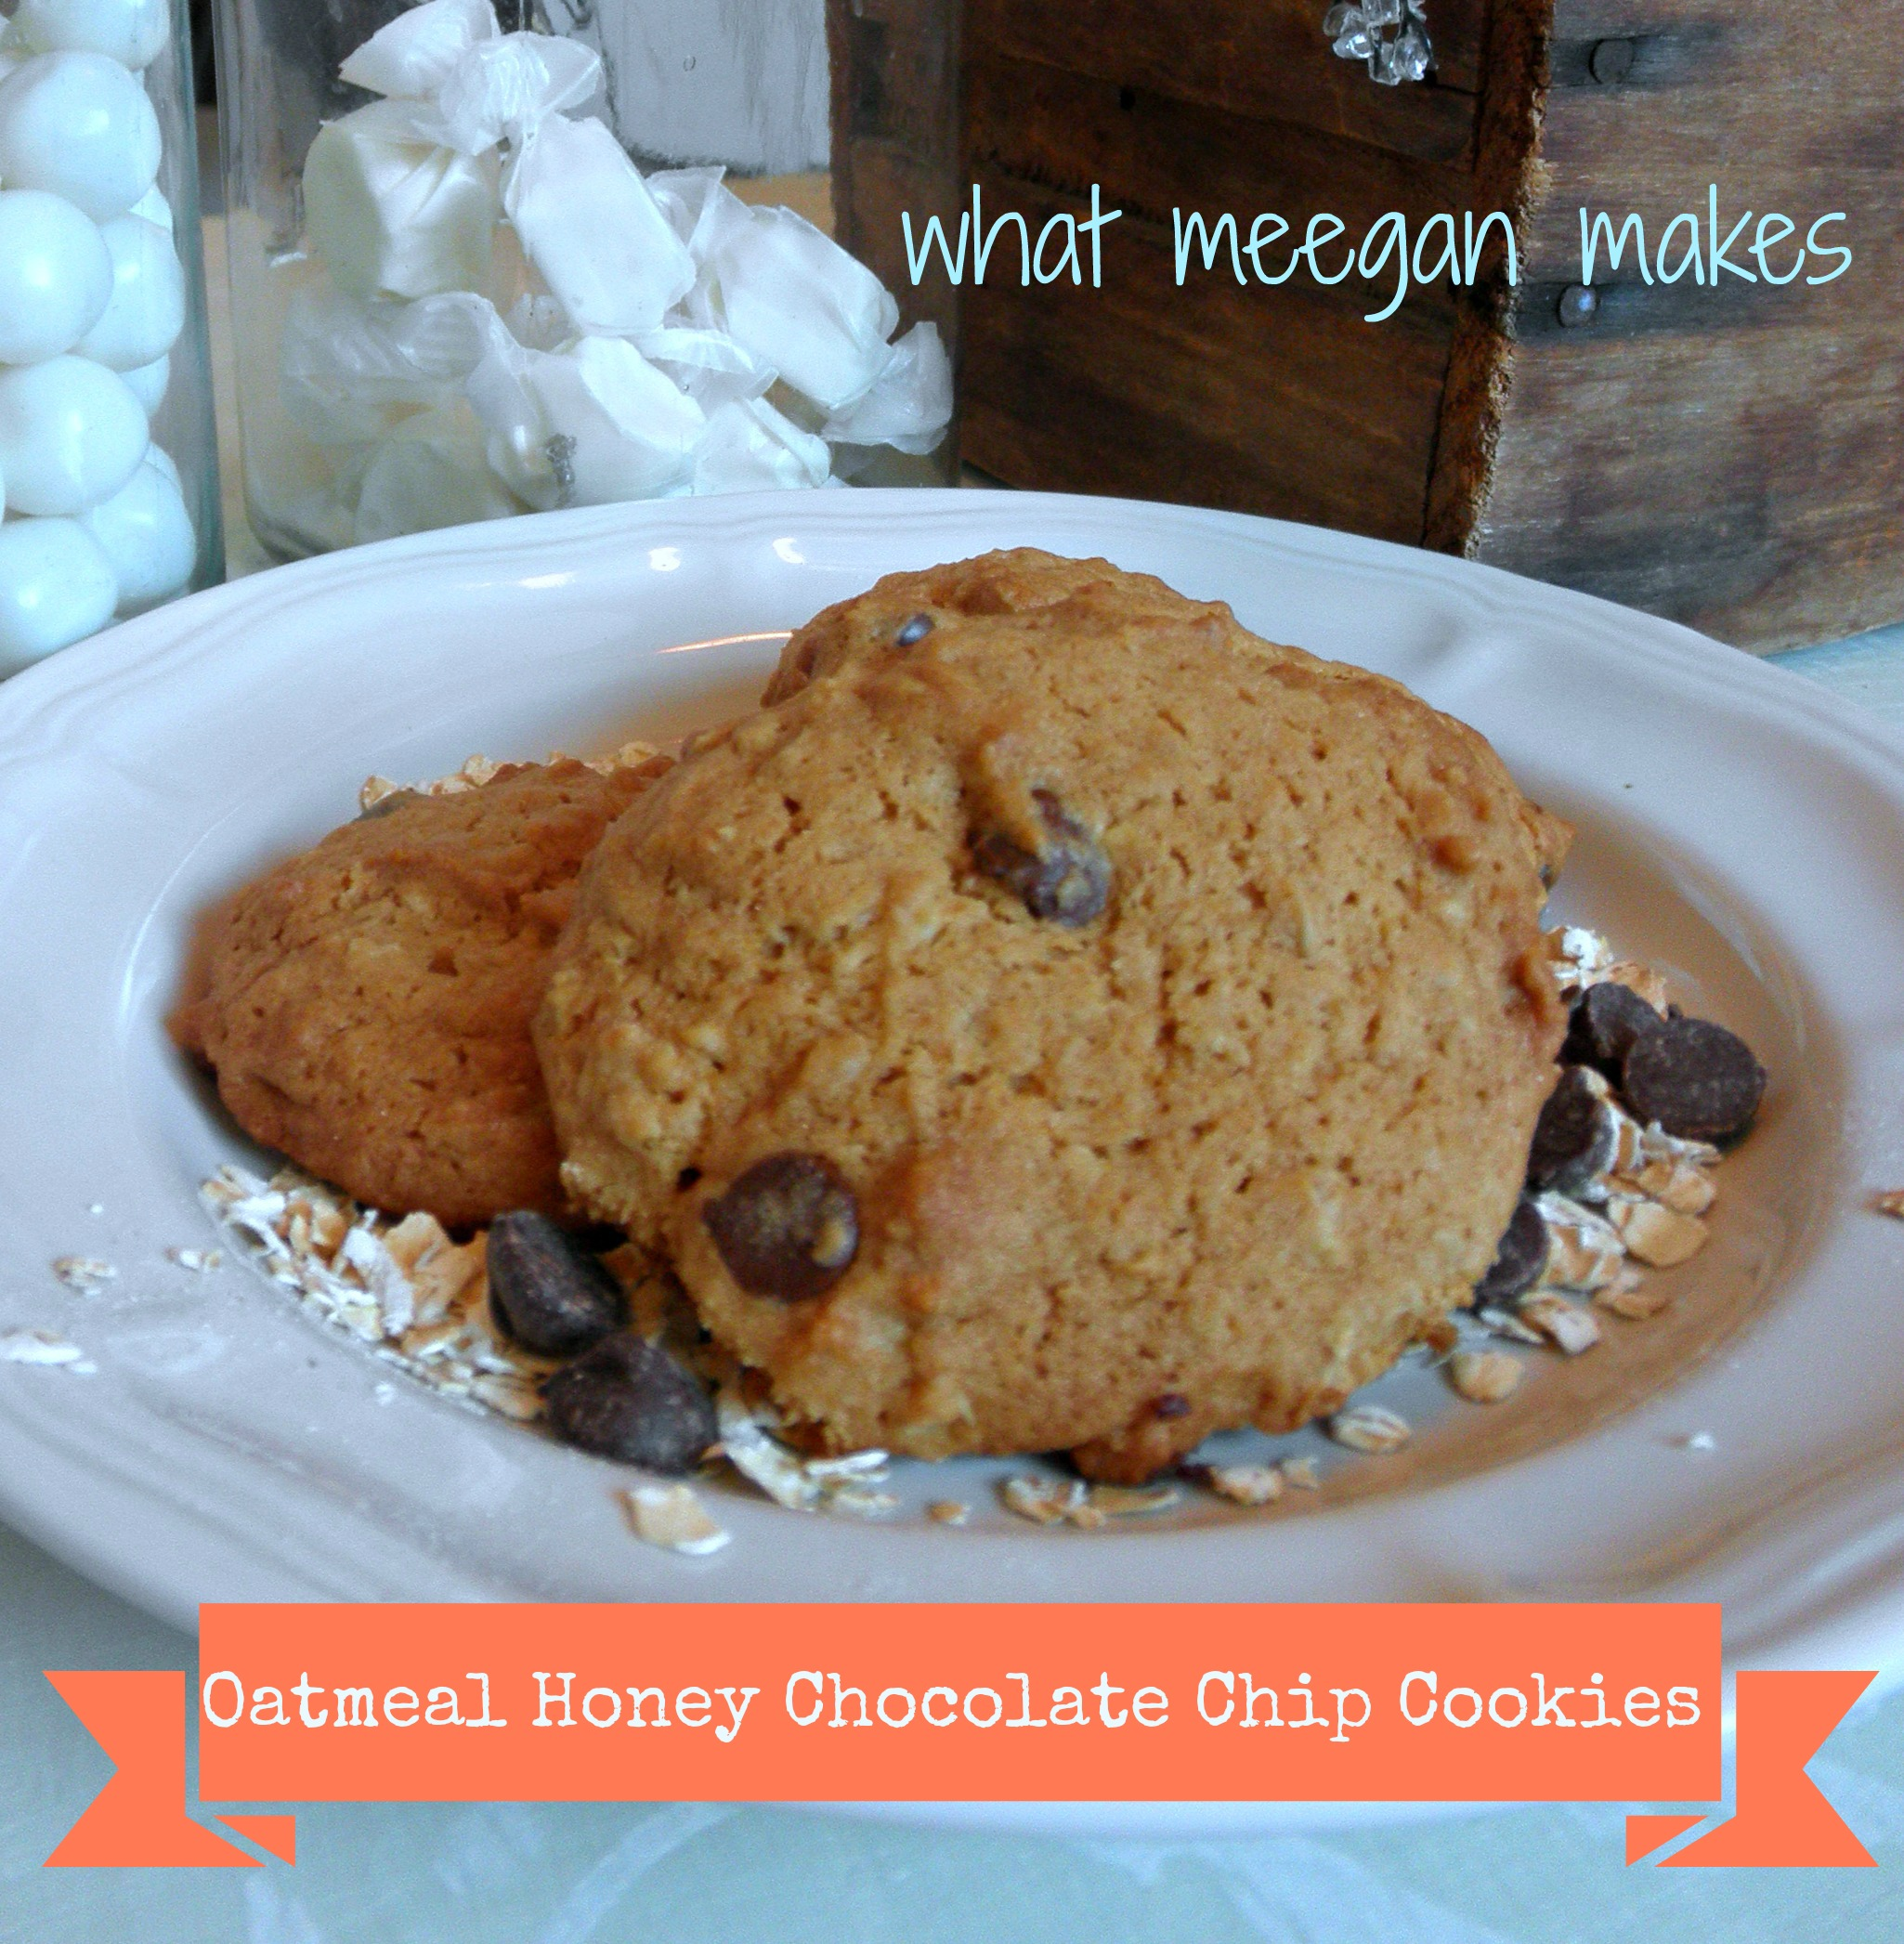 Oatmeal Honey Chocolate Chip Cookies